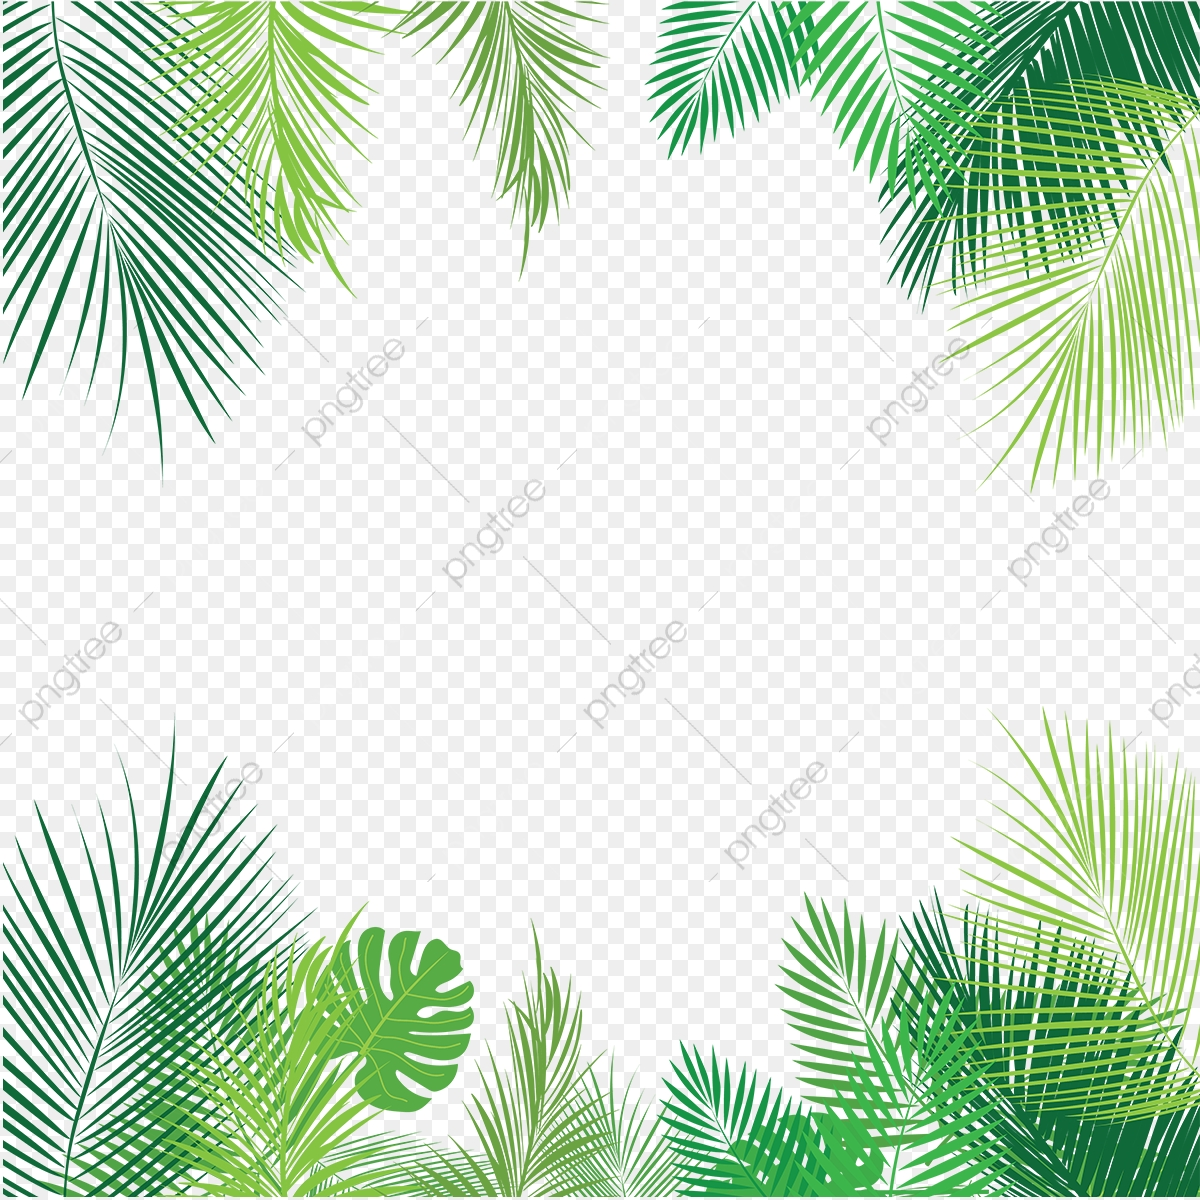 Tropical Palm Leaves Png Png Free Download Palm Tropical Leaves Leaves Png And Vector With Transparent Background For Free Download Search and find more on vippng. https pngtree com freepng tropical palm leaves png png free download 3553609 html